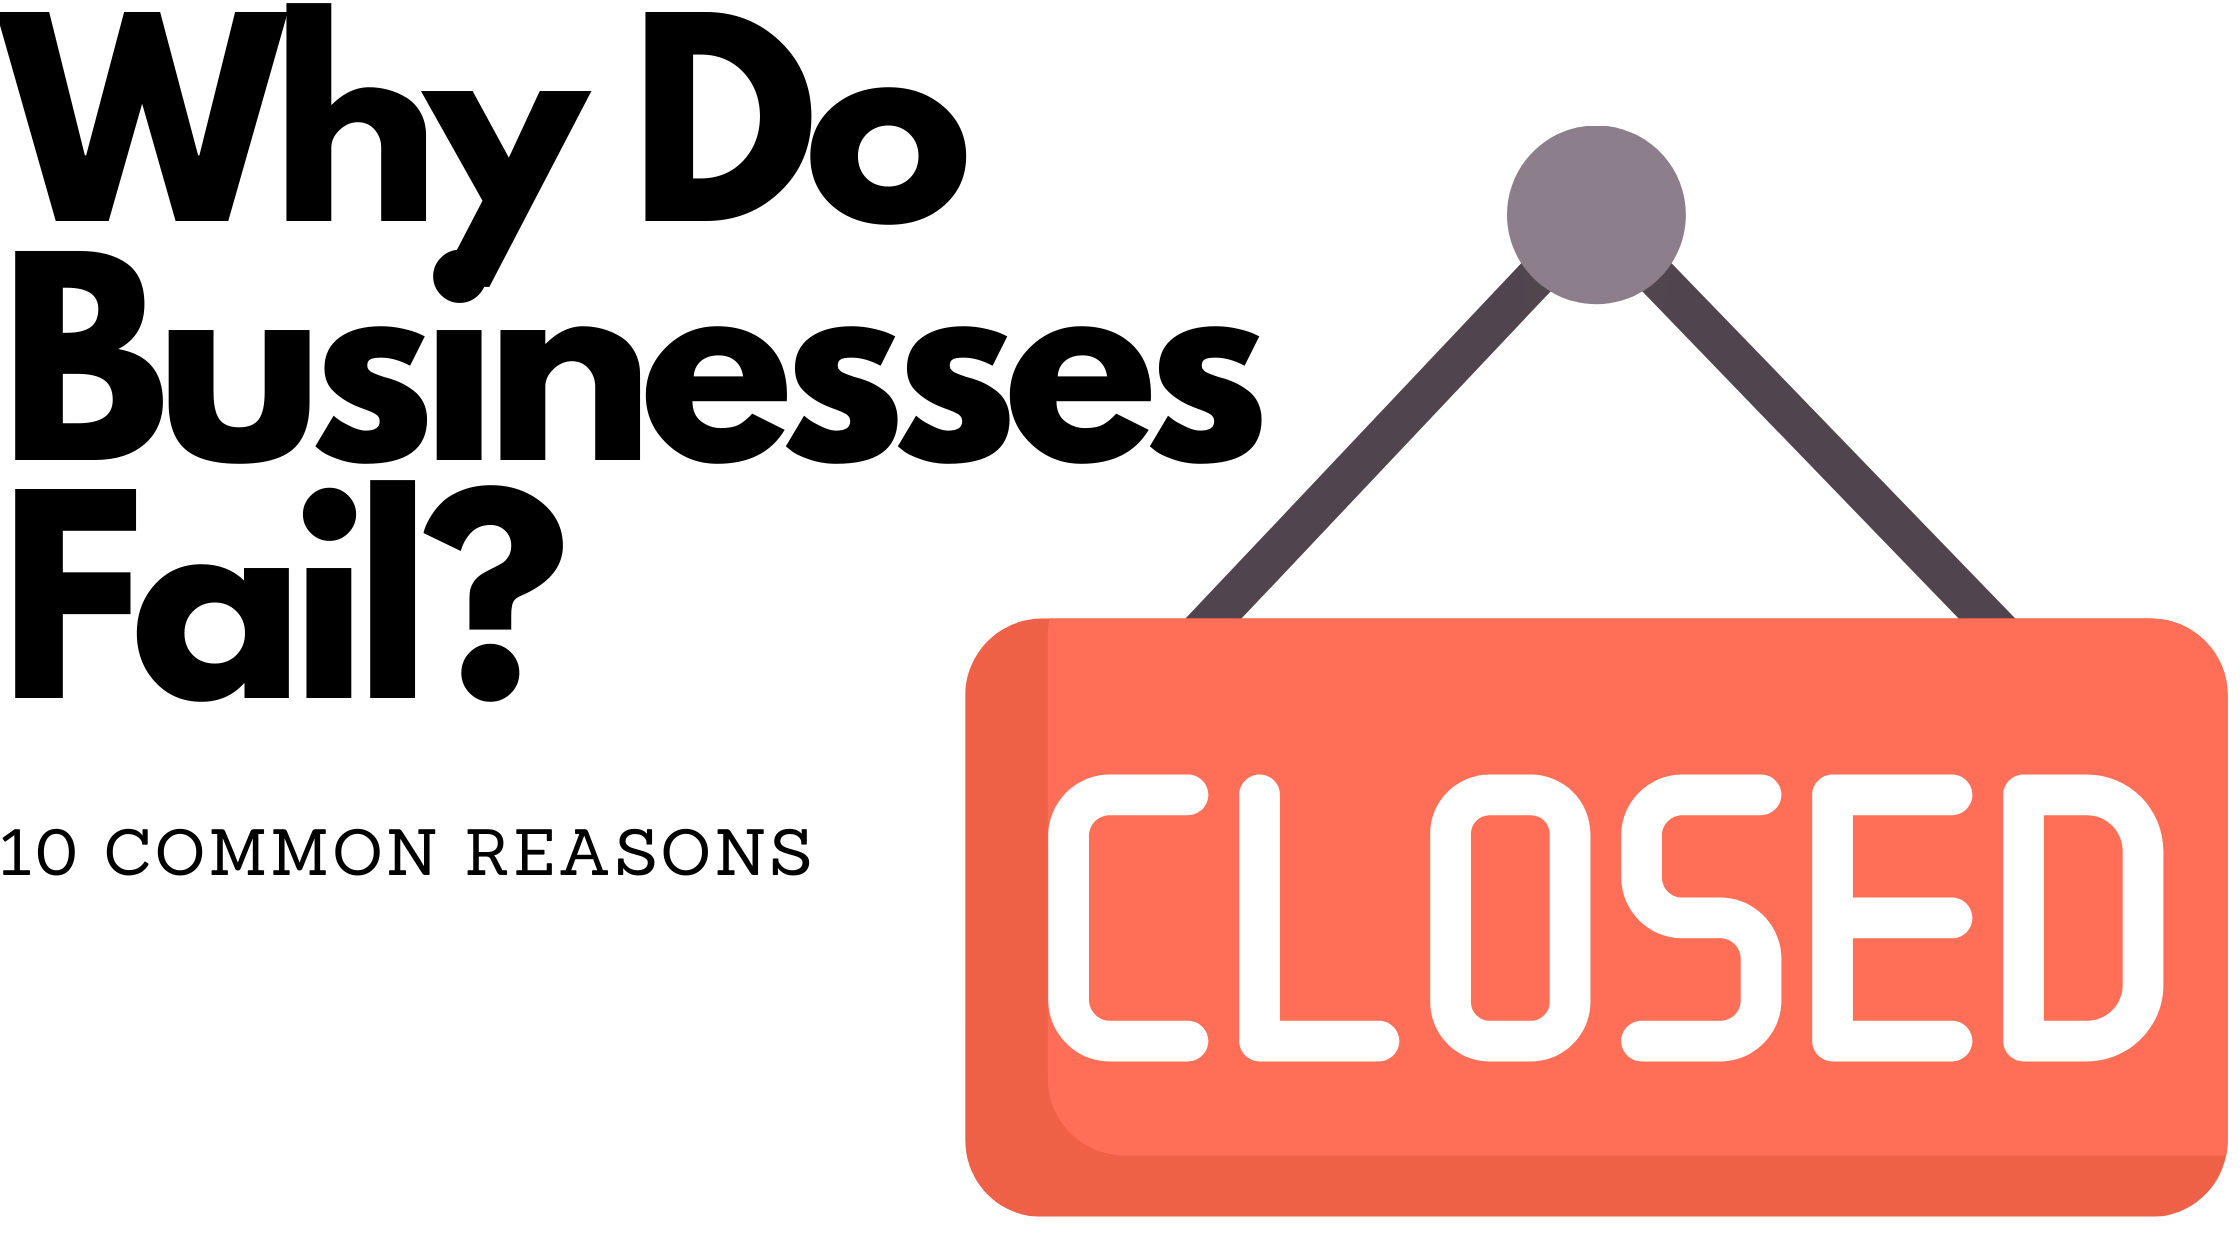 Why do businesses fail